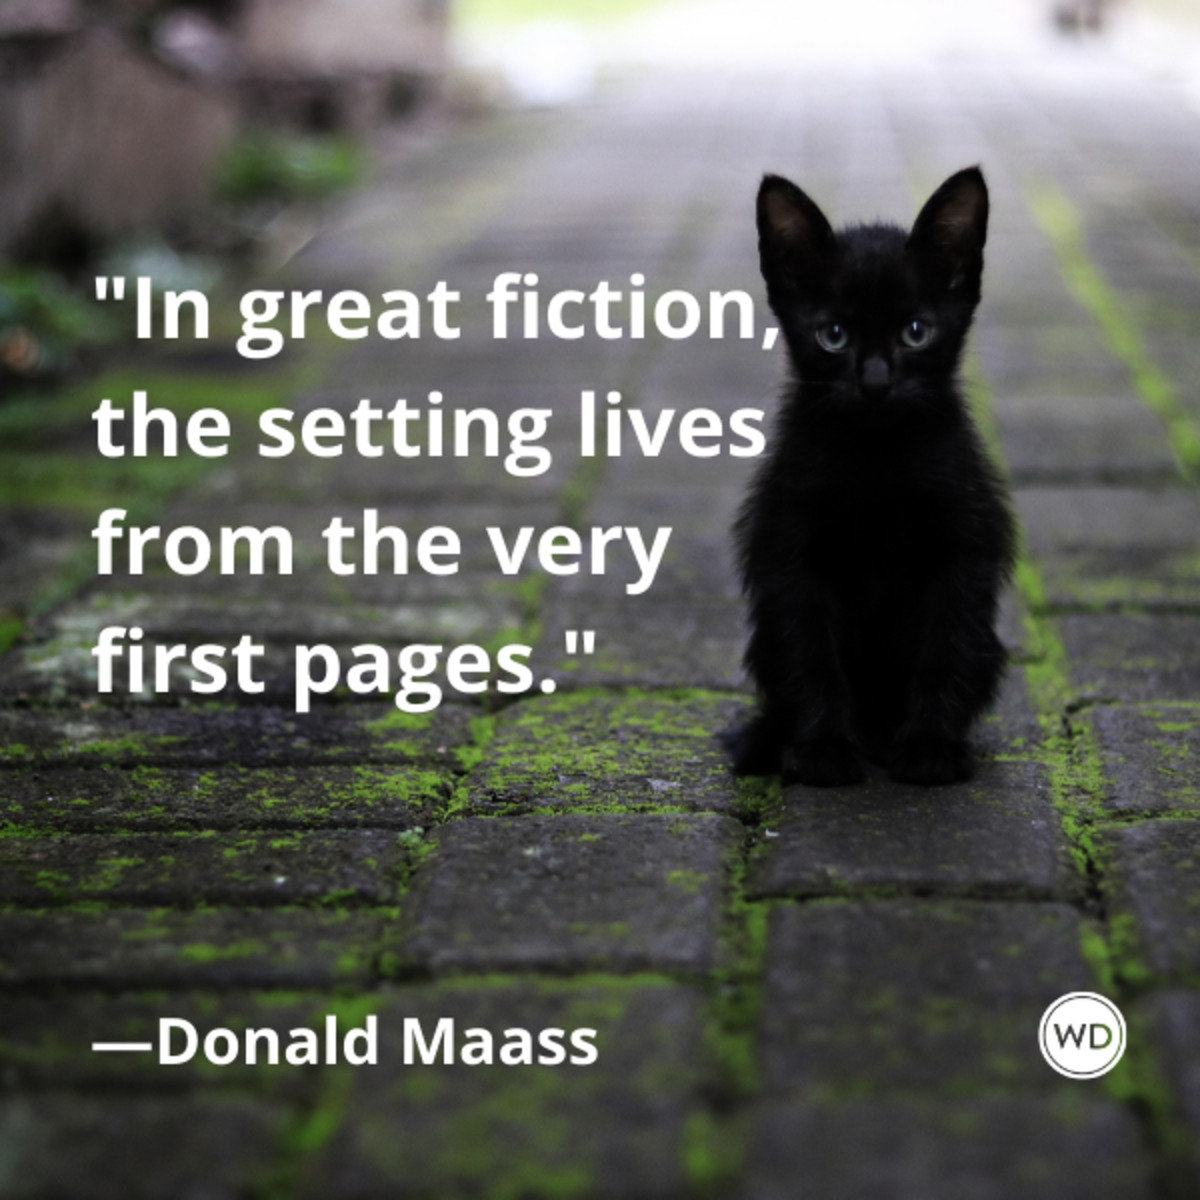 donald_maass_quotes_in_great_fiction_the_setting_lives_from_the_very_first_pages_cats_fiction